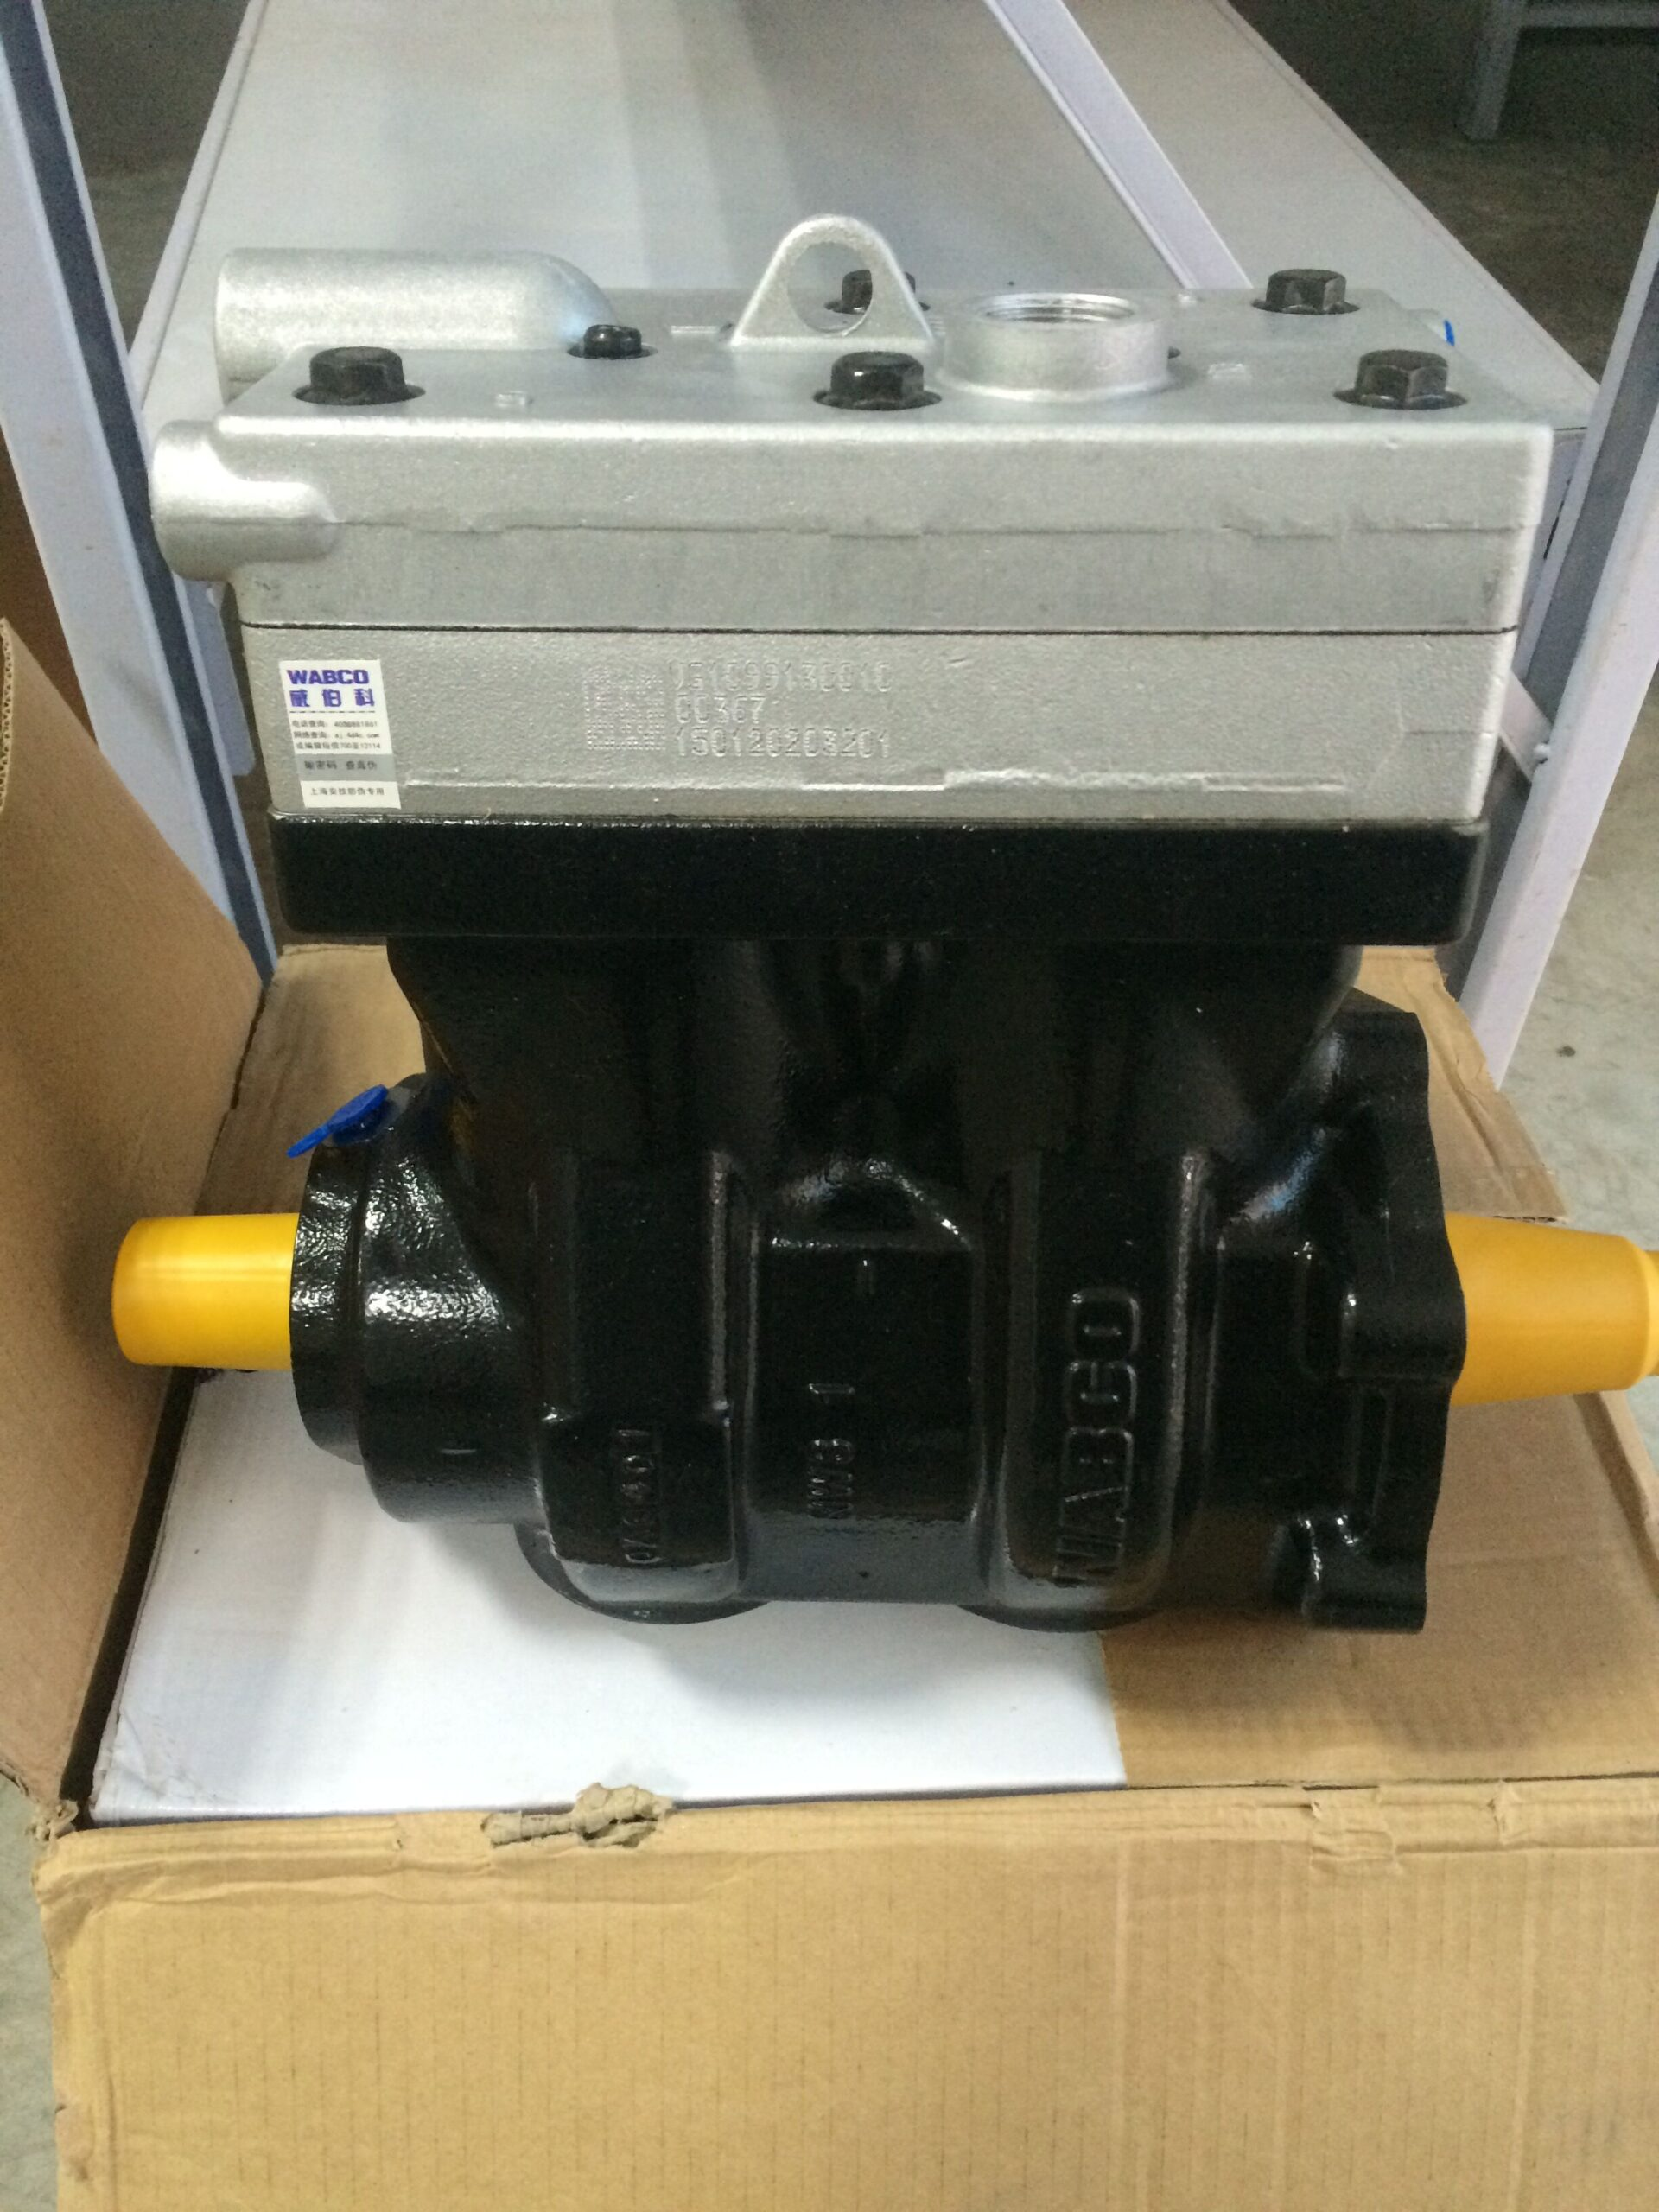 VG1560130080双缸水冷空压机 scaled - Евро-2 Howo A7 OEM VG156013008 Sinotruk Double Cylinder Air Compressor